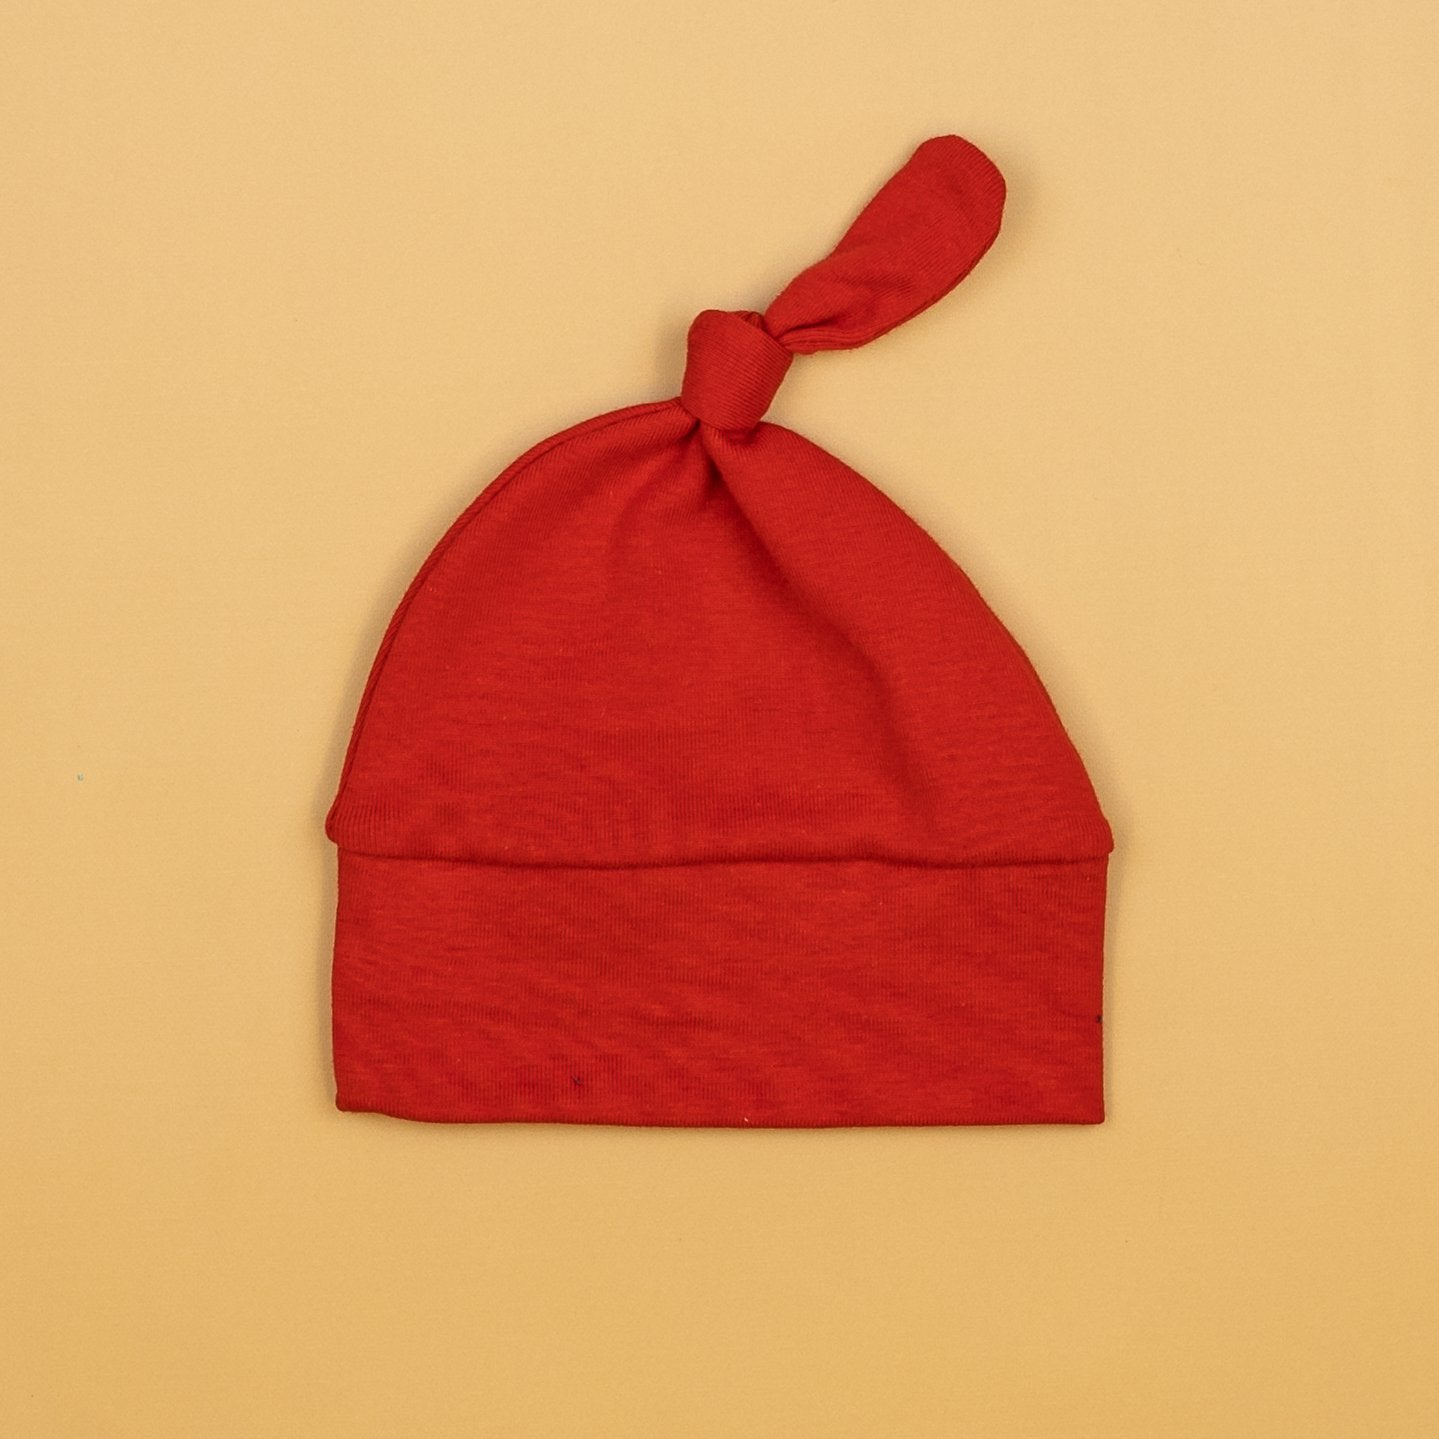 Cuddle Sleep Dream Knot Hat Red Knot Hat